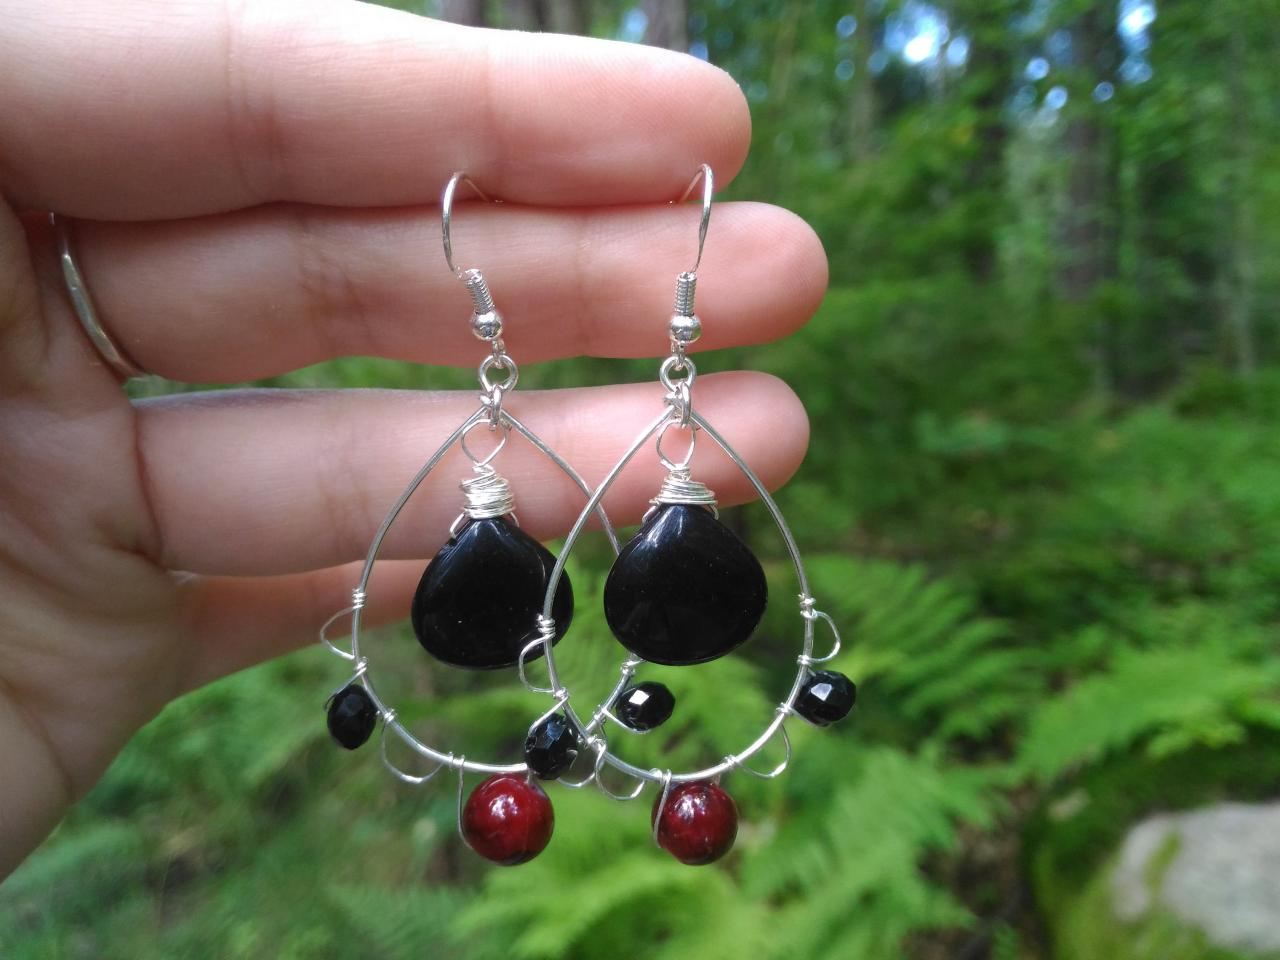 Black and red gemstone earrings, Black onyx drop earrings, Wire wrapped silver earrings, Bohemian earrings in black, Statement earrings